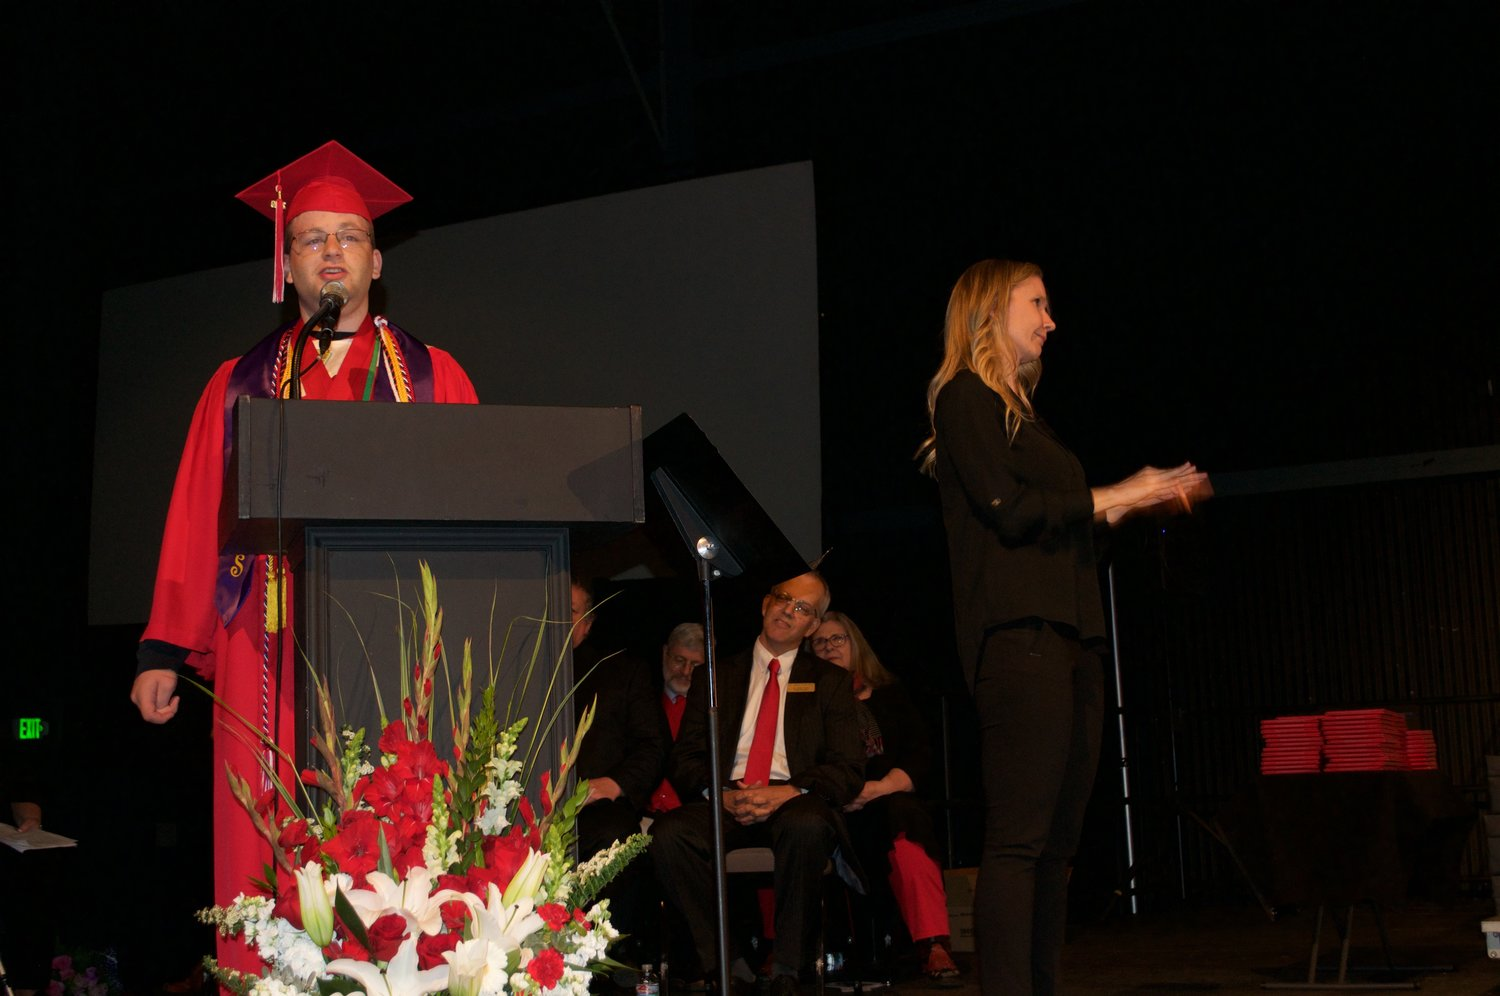 Port Townsend 2019 Valedictorian Raphael Bakin made the audience laugh by poking fun at common graduation speech cliches before reversing course and deciding they are the best way to go.